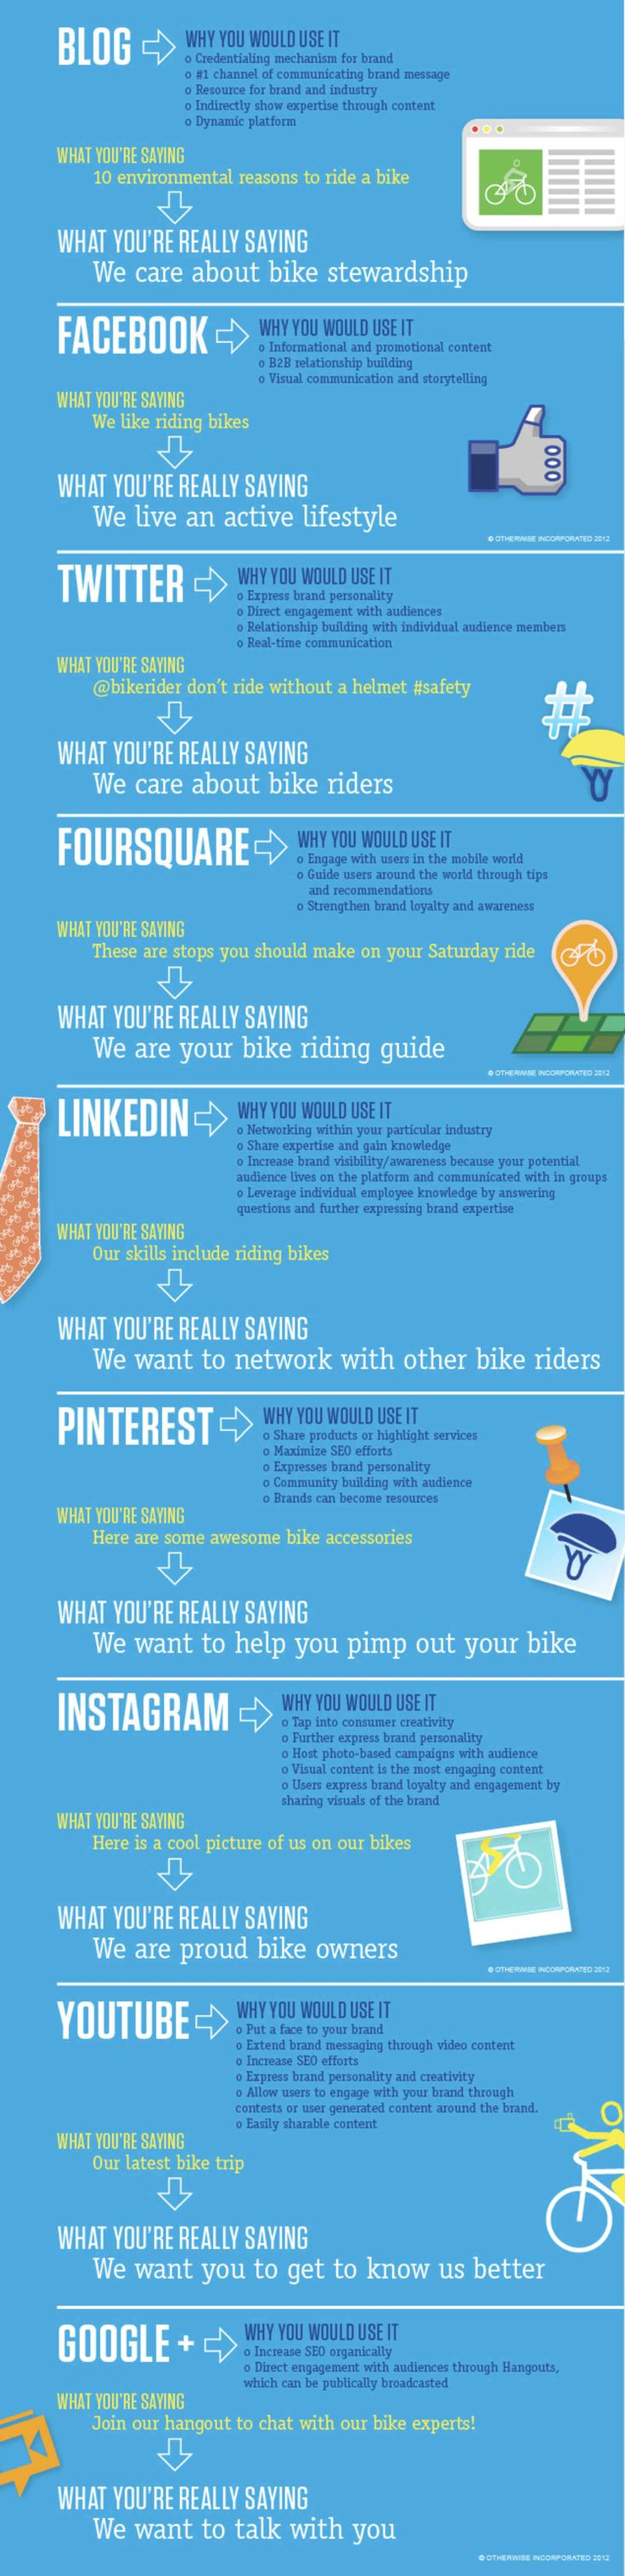 I like the analogy it uses to get through to me. How To Use Social Media To Build A Stronger Brand